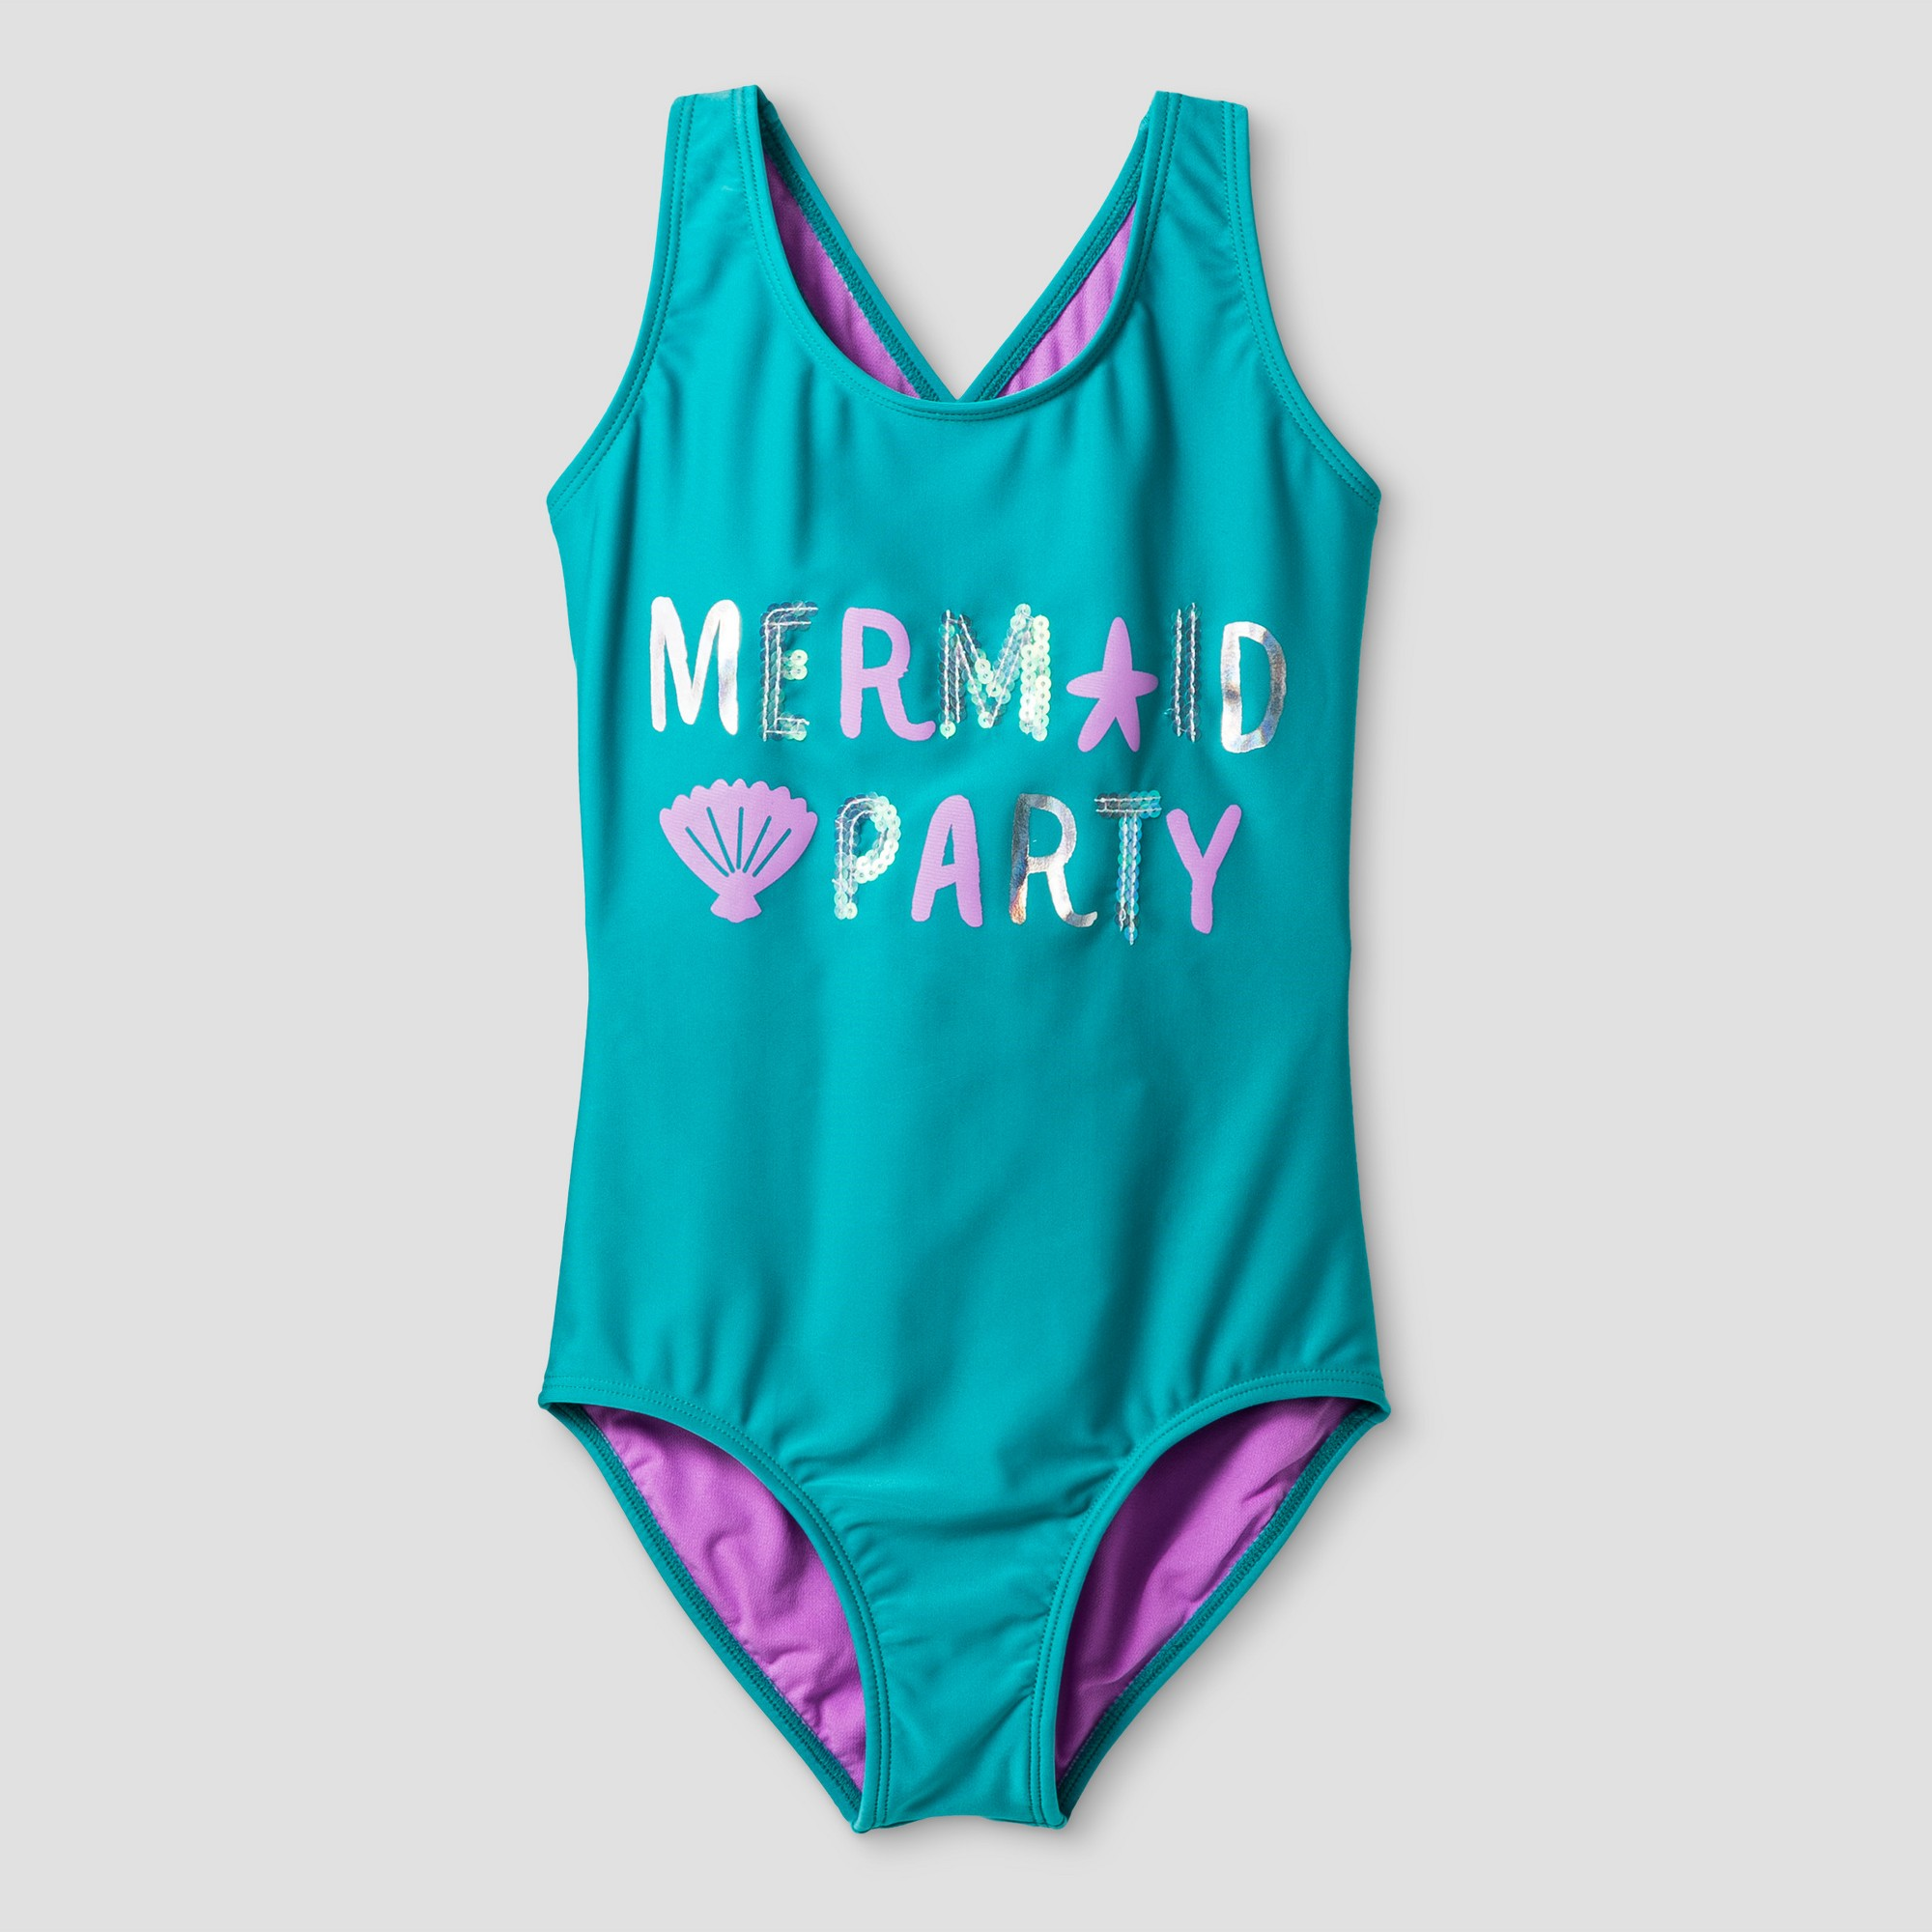 e73889693 Girls' Mermaid Party One Piece Swimsuit - Cat & Jack™ Turquoise L in ...